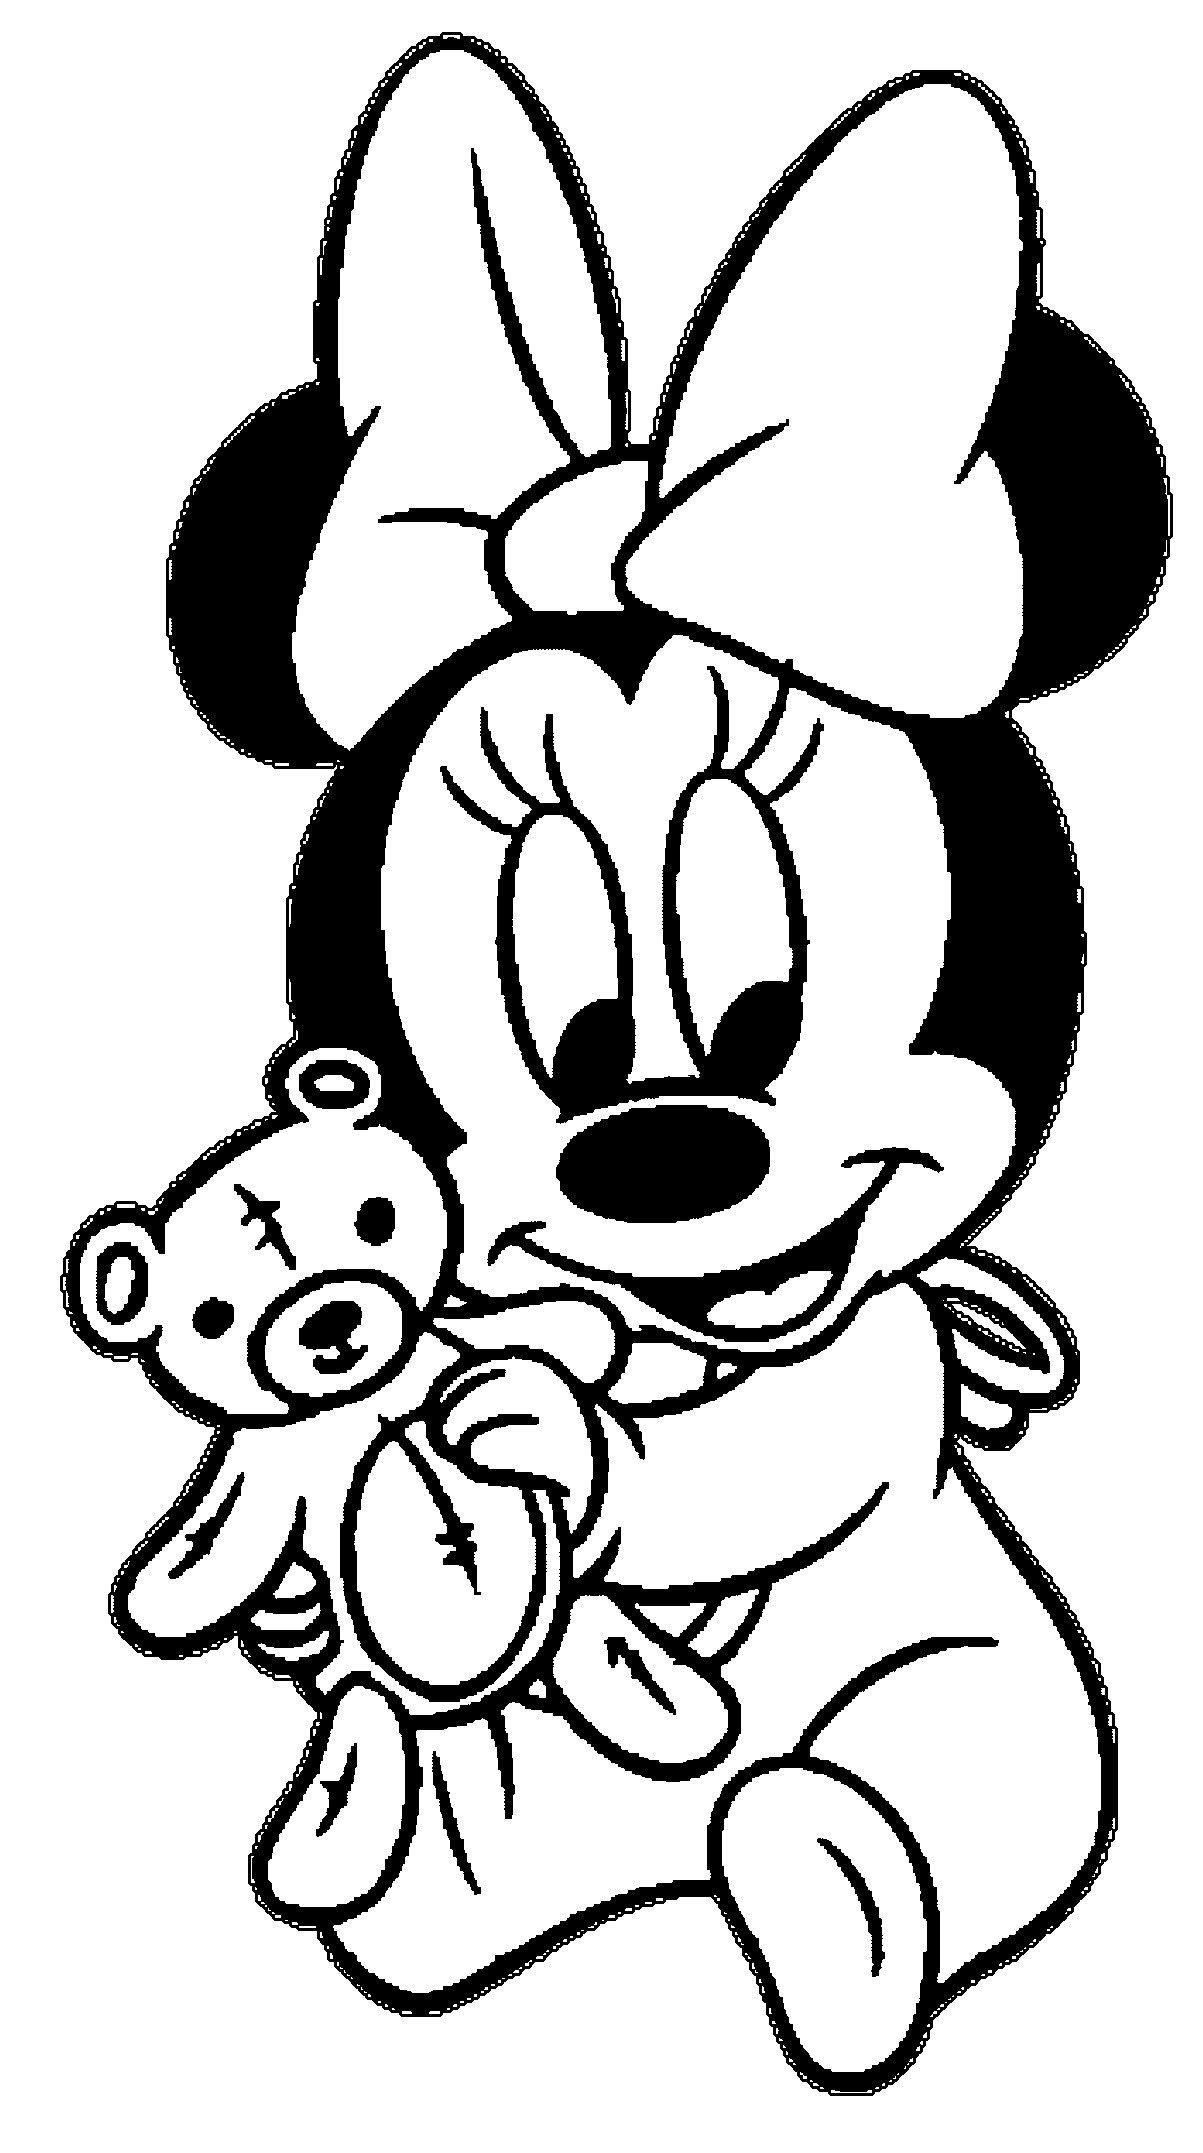 Minnie Baby Coloring Pages 2 By Sean Mickey Mouse Coloring Pages Minnie Mouse Coloring Pages Baby Coloring Pages